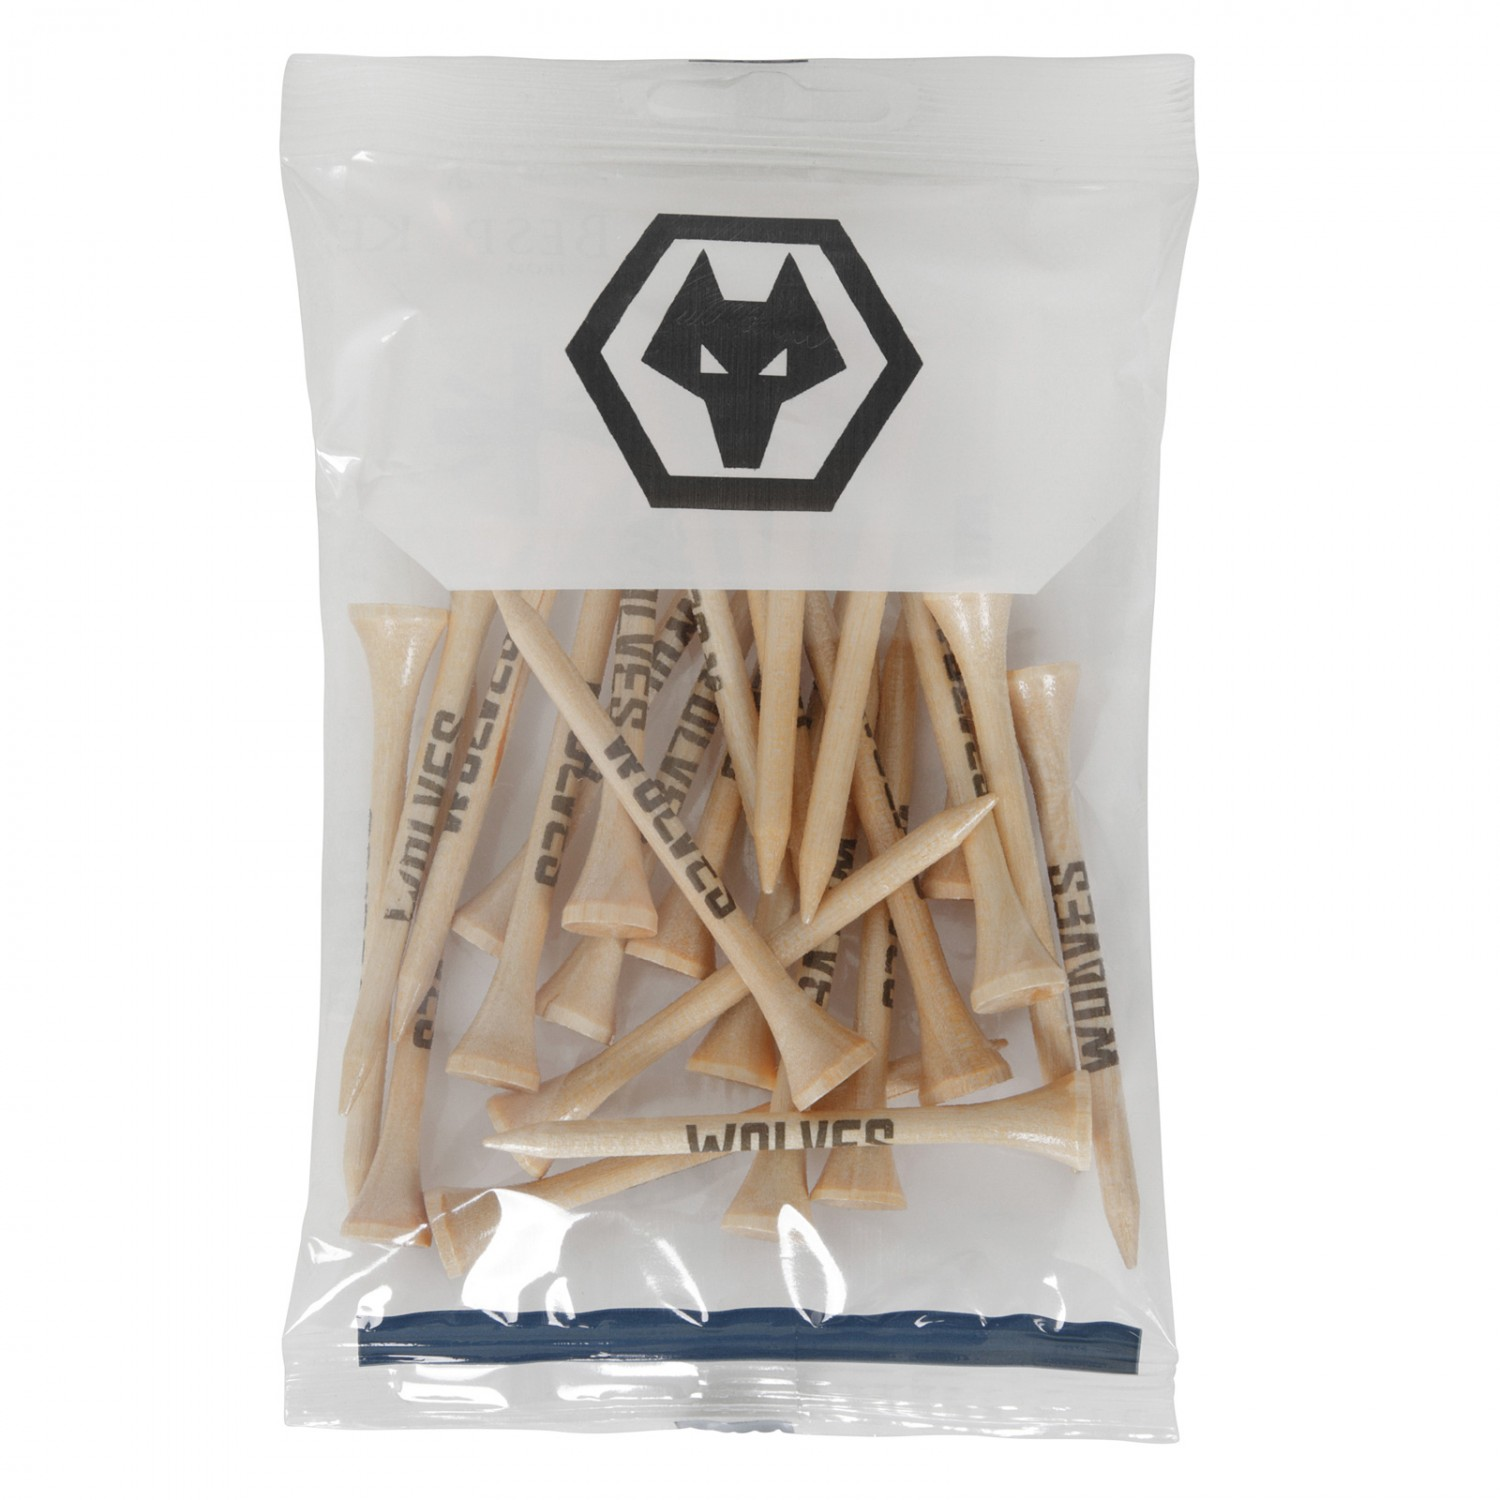 Wolves Wooden Tee Pack